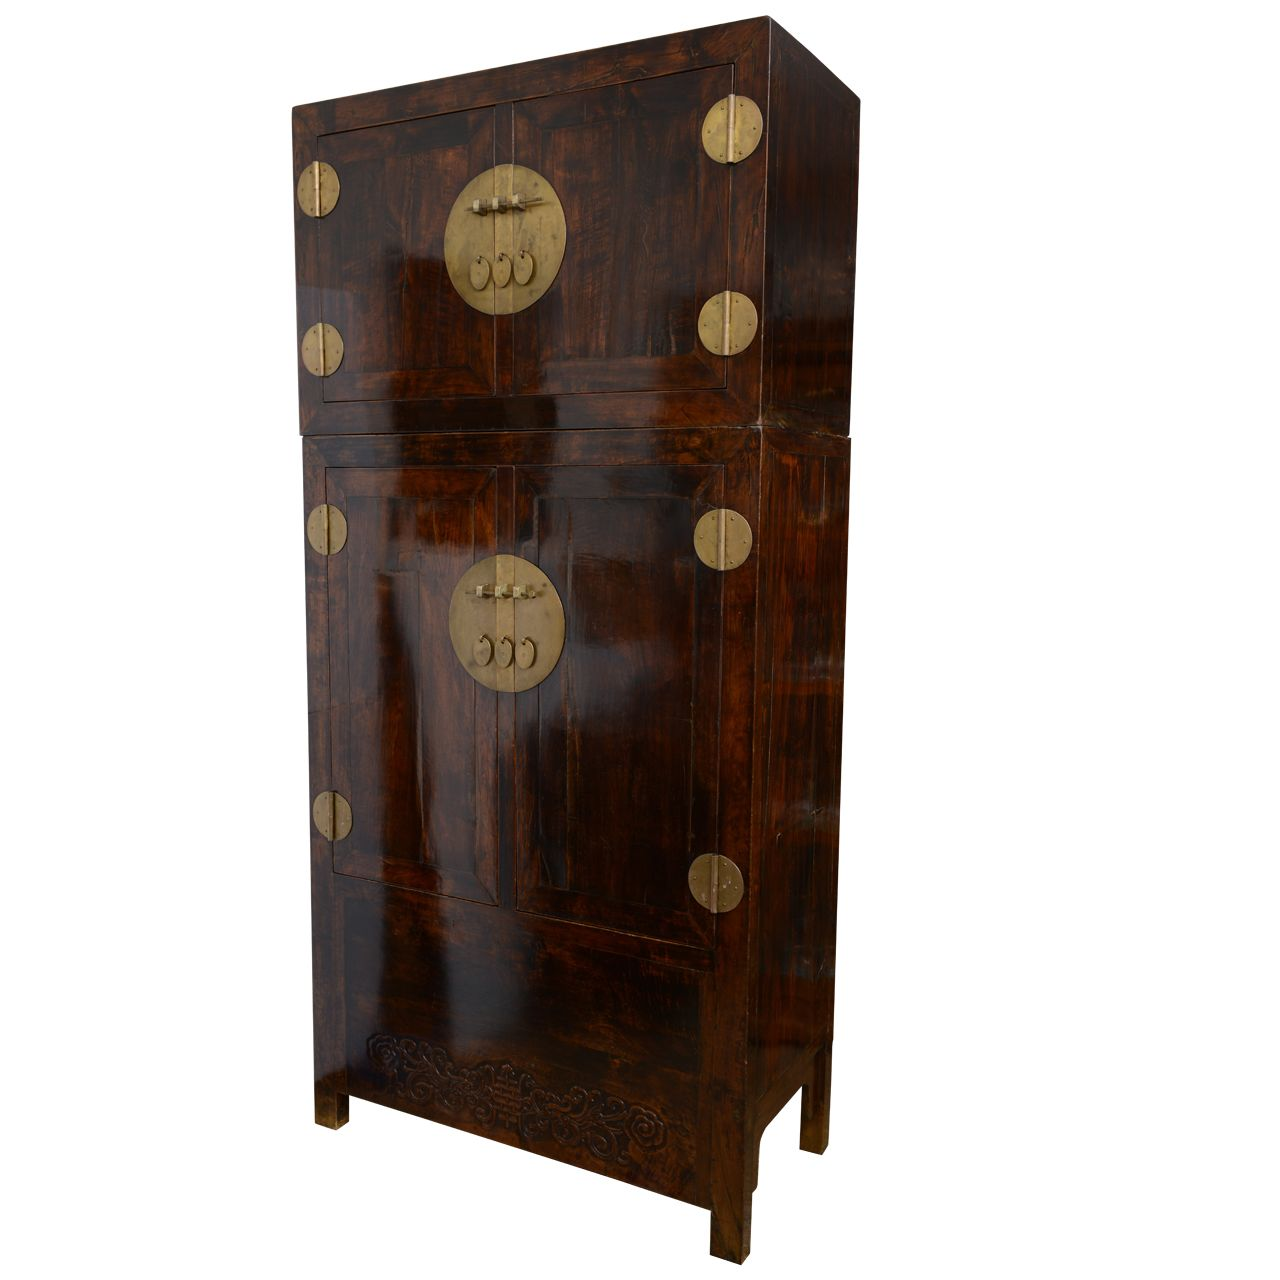 Chinese Armoire Storage Cabinet Wardrobe, 18th century | From a ...